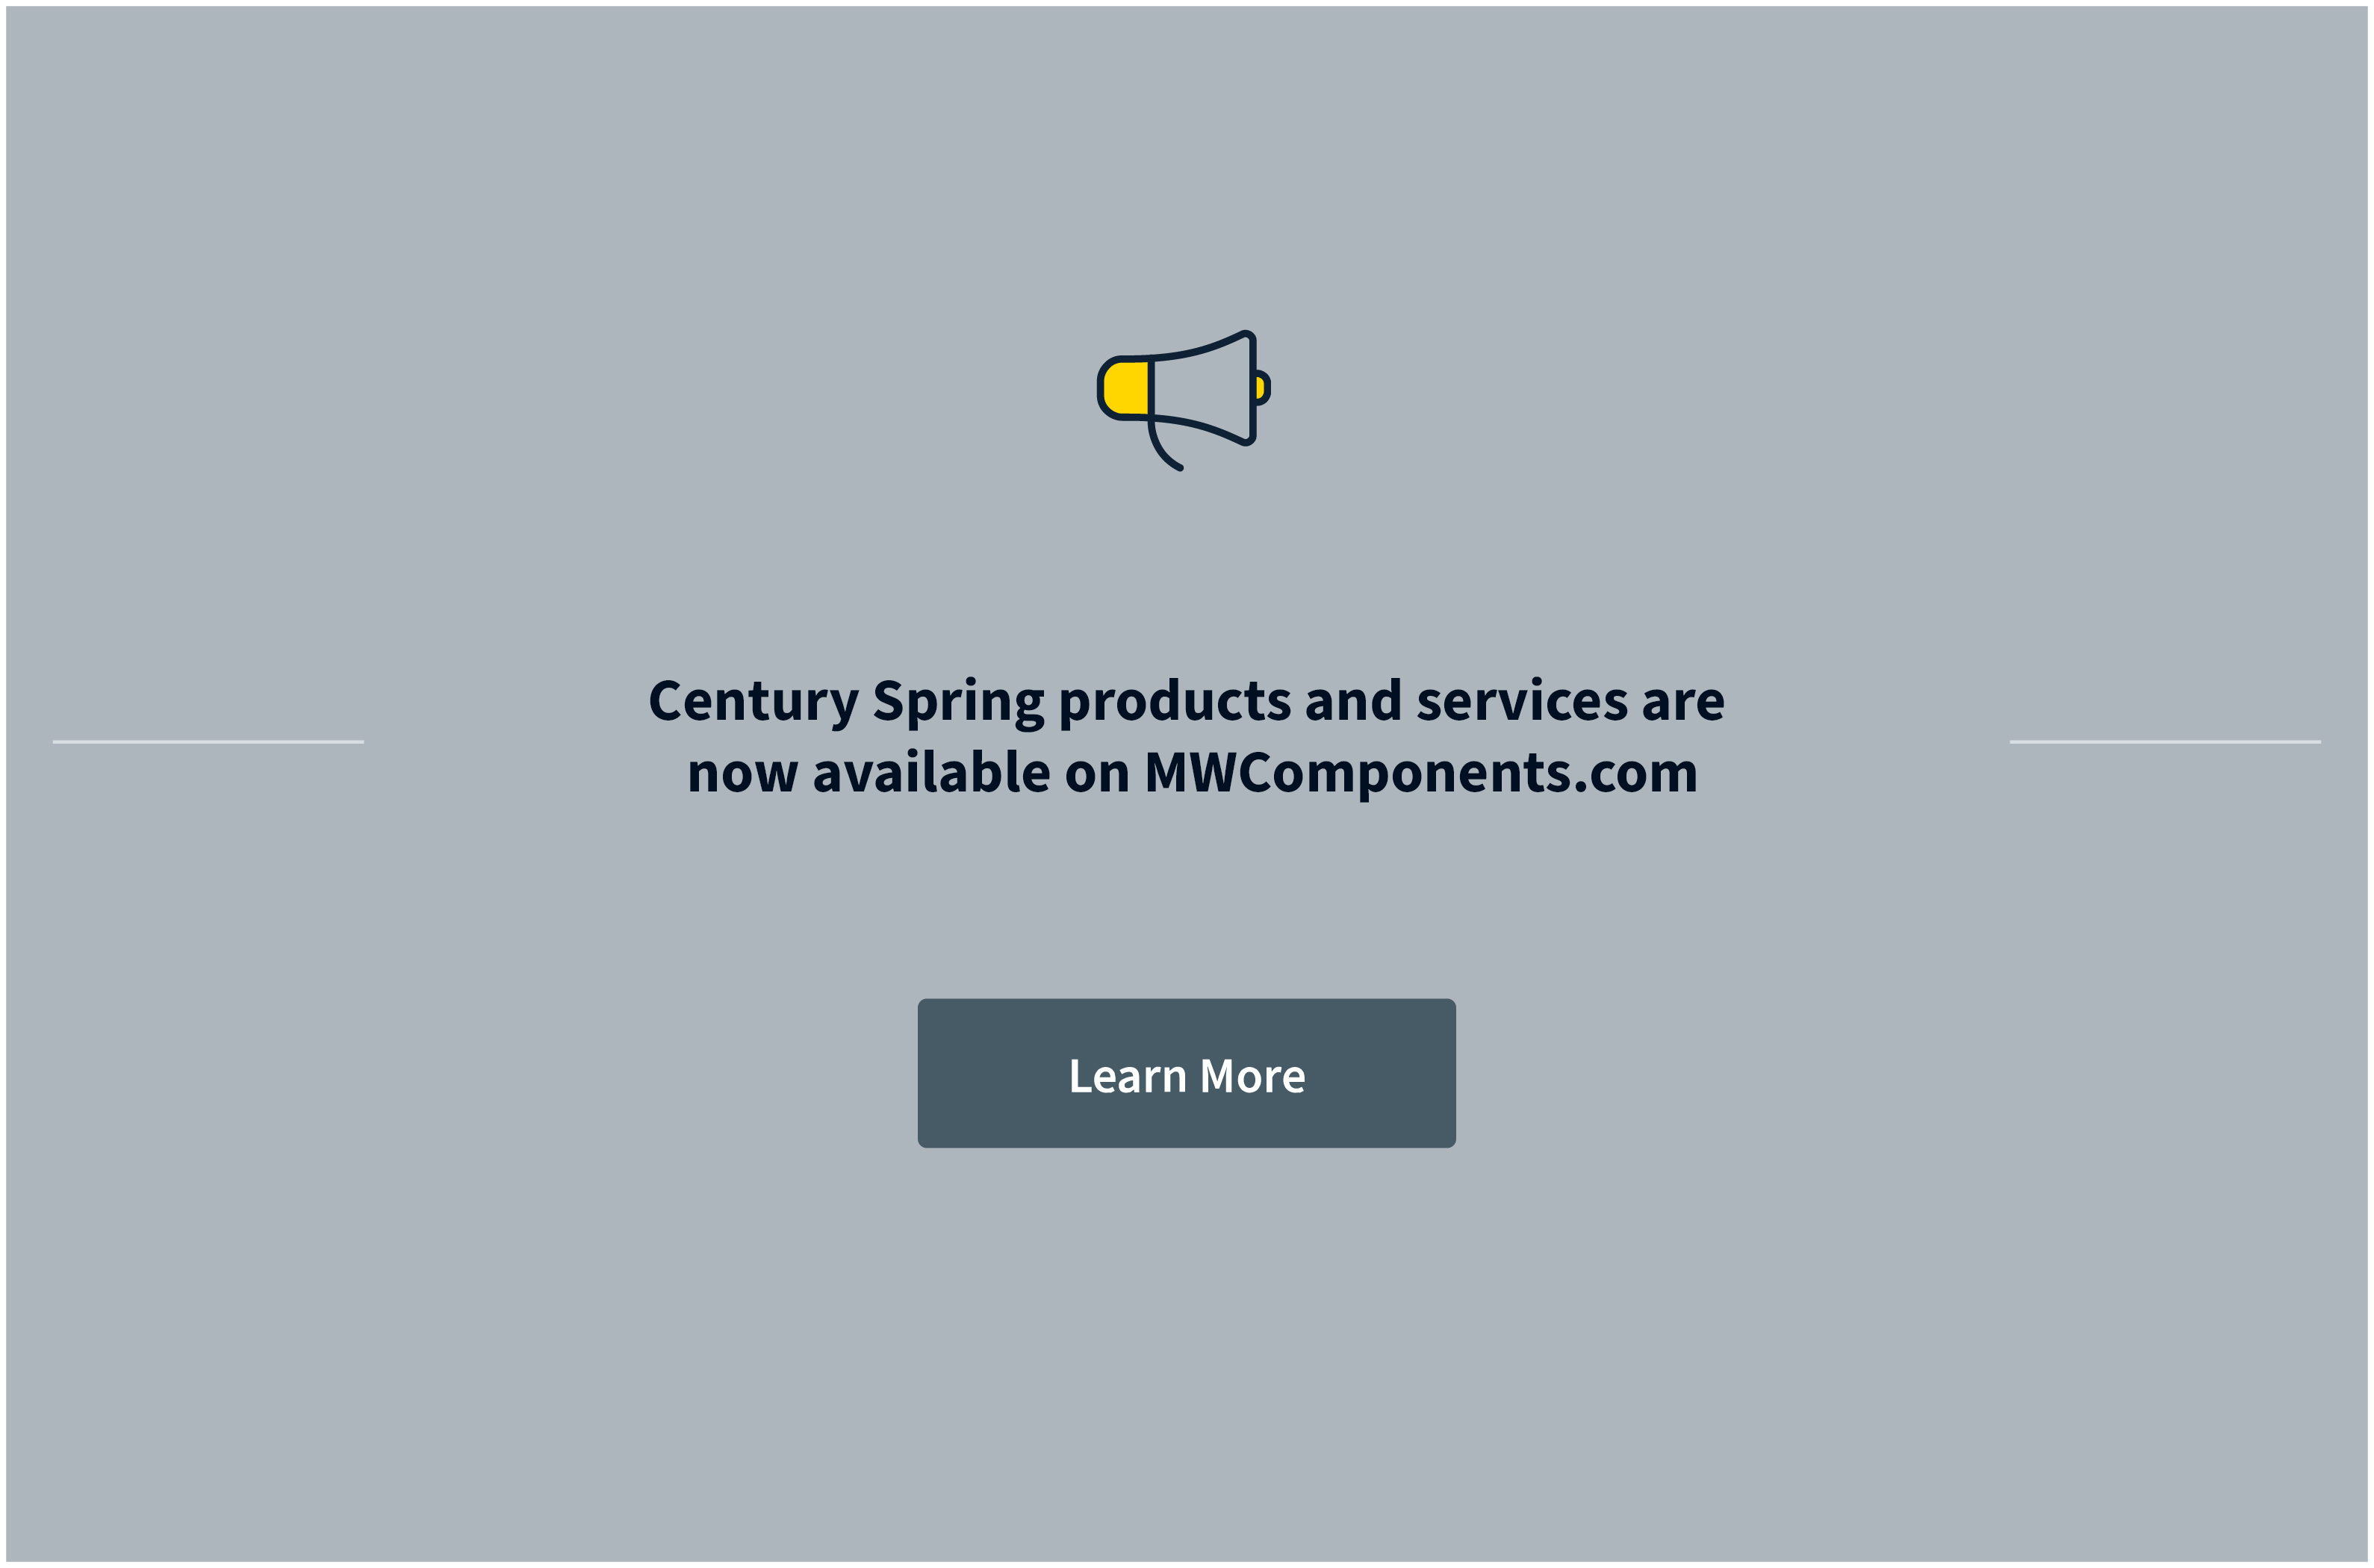 Century Spring is now part of MW Components